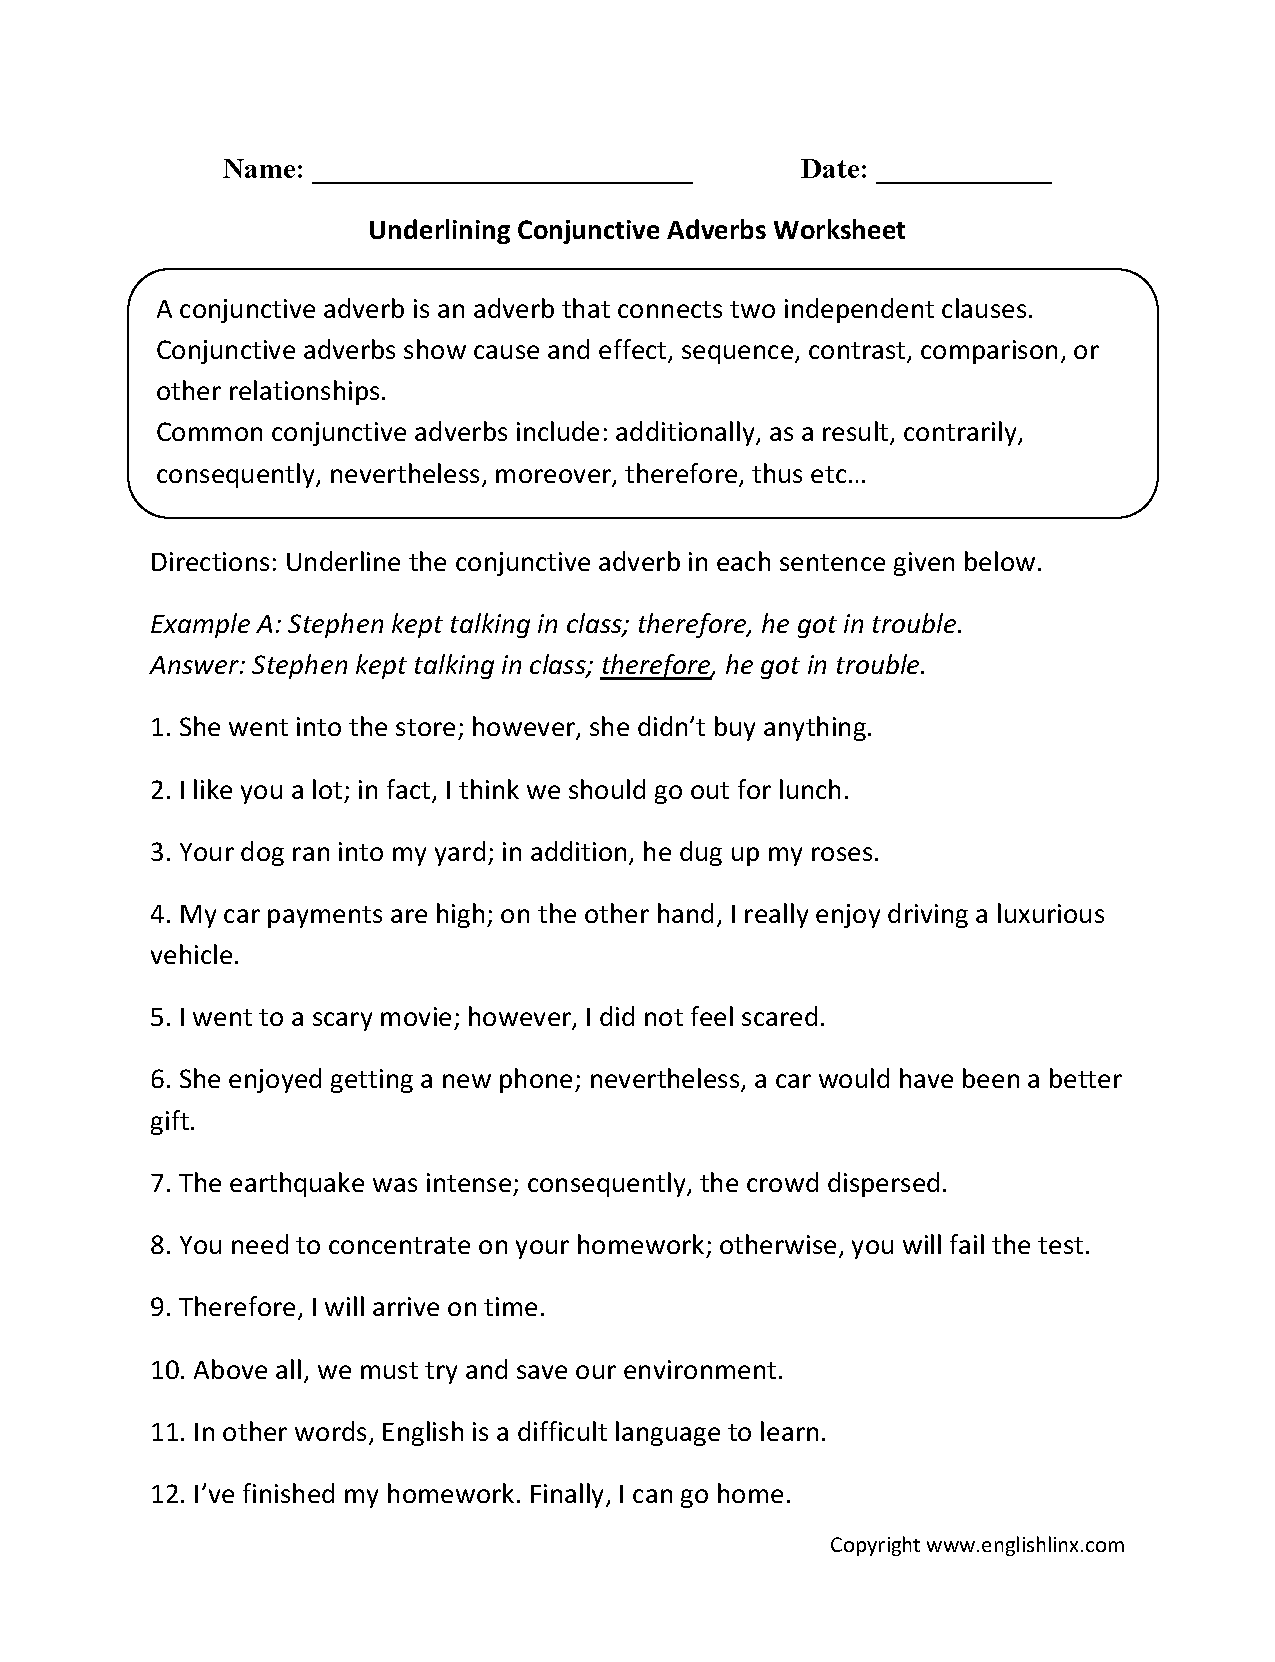 Aldiablosus  Unique Englishlinxcom  Conjunctions Worksheets With Outstanding Worksheet With Amazing Closing Costs Worksheet Also Speed Word Problems Worksheet In Addition Law Of Sines Cosines Worksheet And Free Printable Budget Worksheet Template As Well As Th Grade Language Arts Worksheets Free Additionally Trigonometry Practice Worksheet From Englishlinxcom With Aldiablosus  Outstanding Englishlinxcom  Conjunctions Worksheets With Amazing Worksheet And Unique Closing Costs Worksheet Also Speed Word Problems Worksheet In Addition Law Of Sines Cosines Worksheet From Englishlinxcom